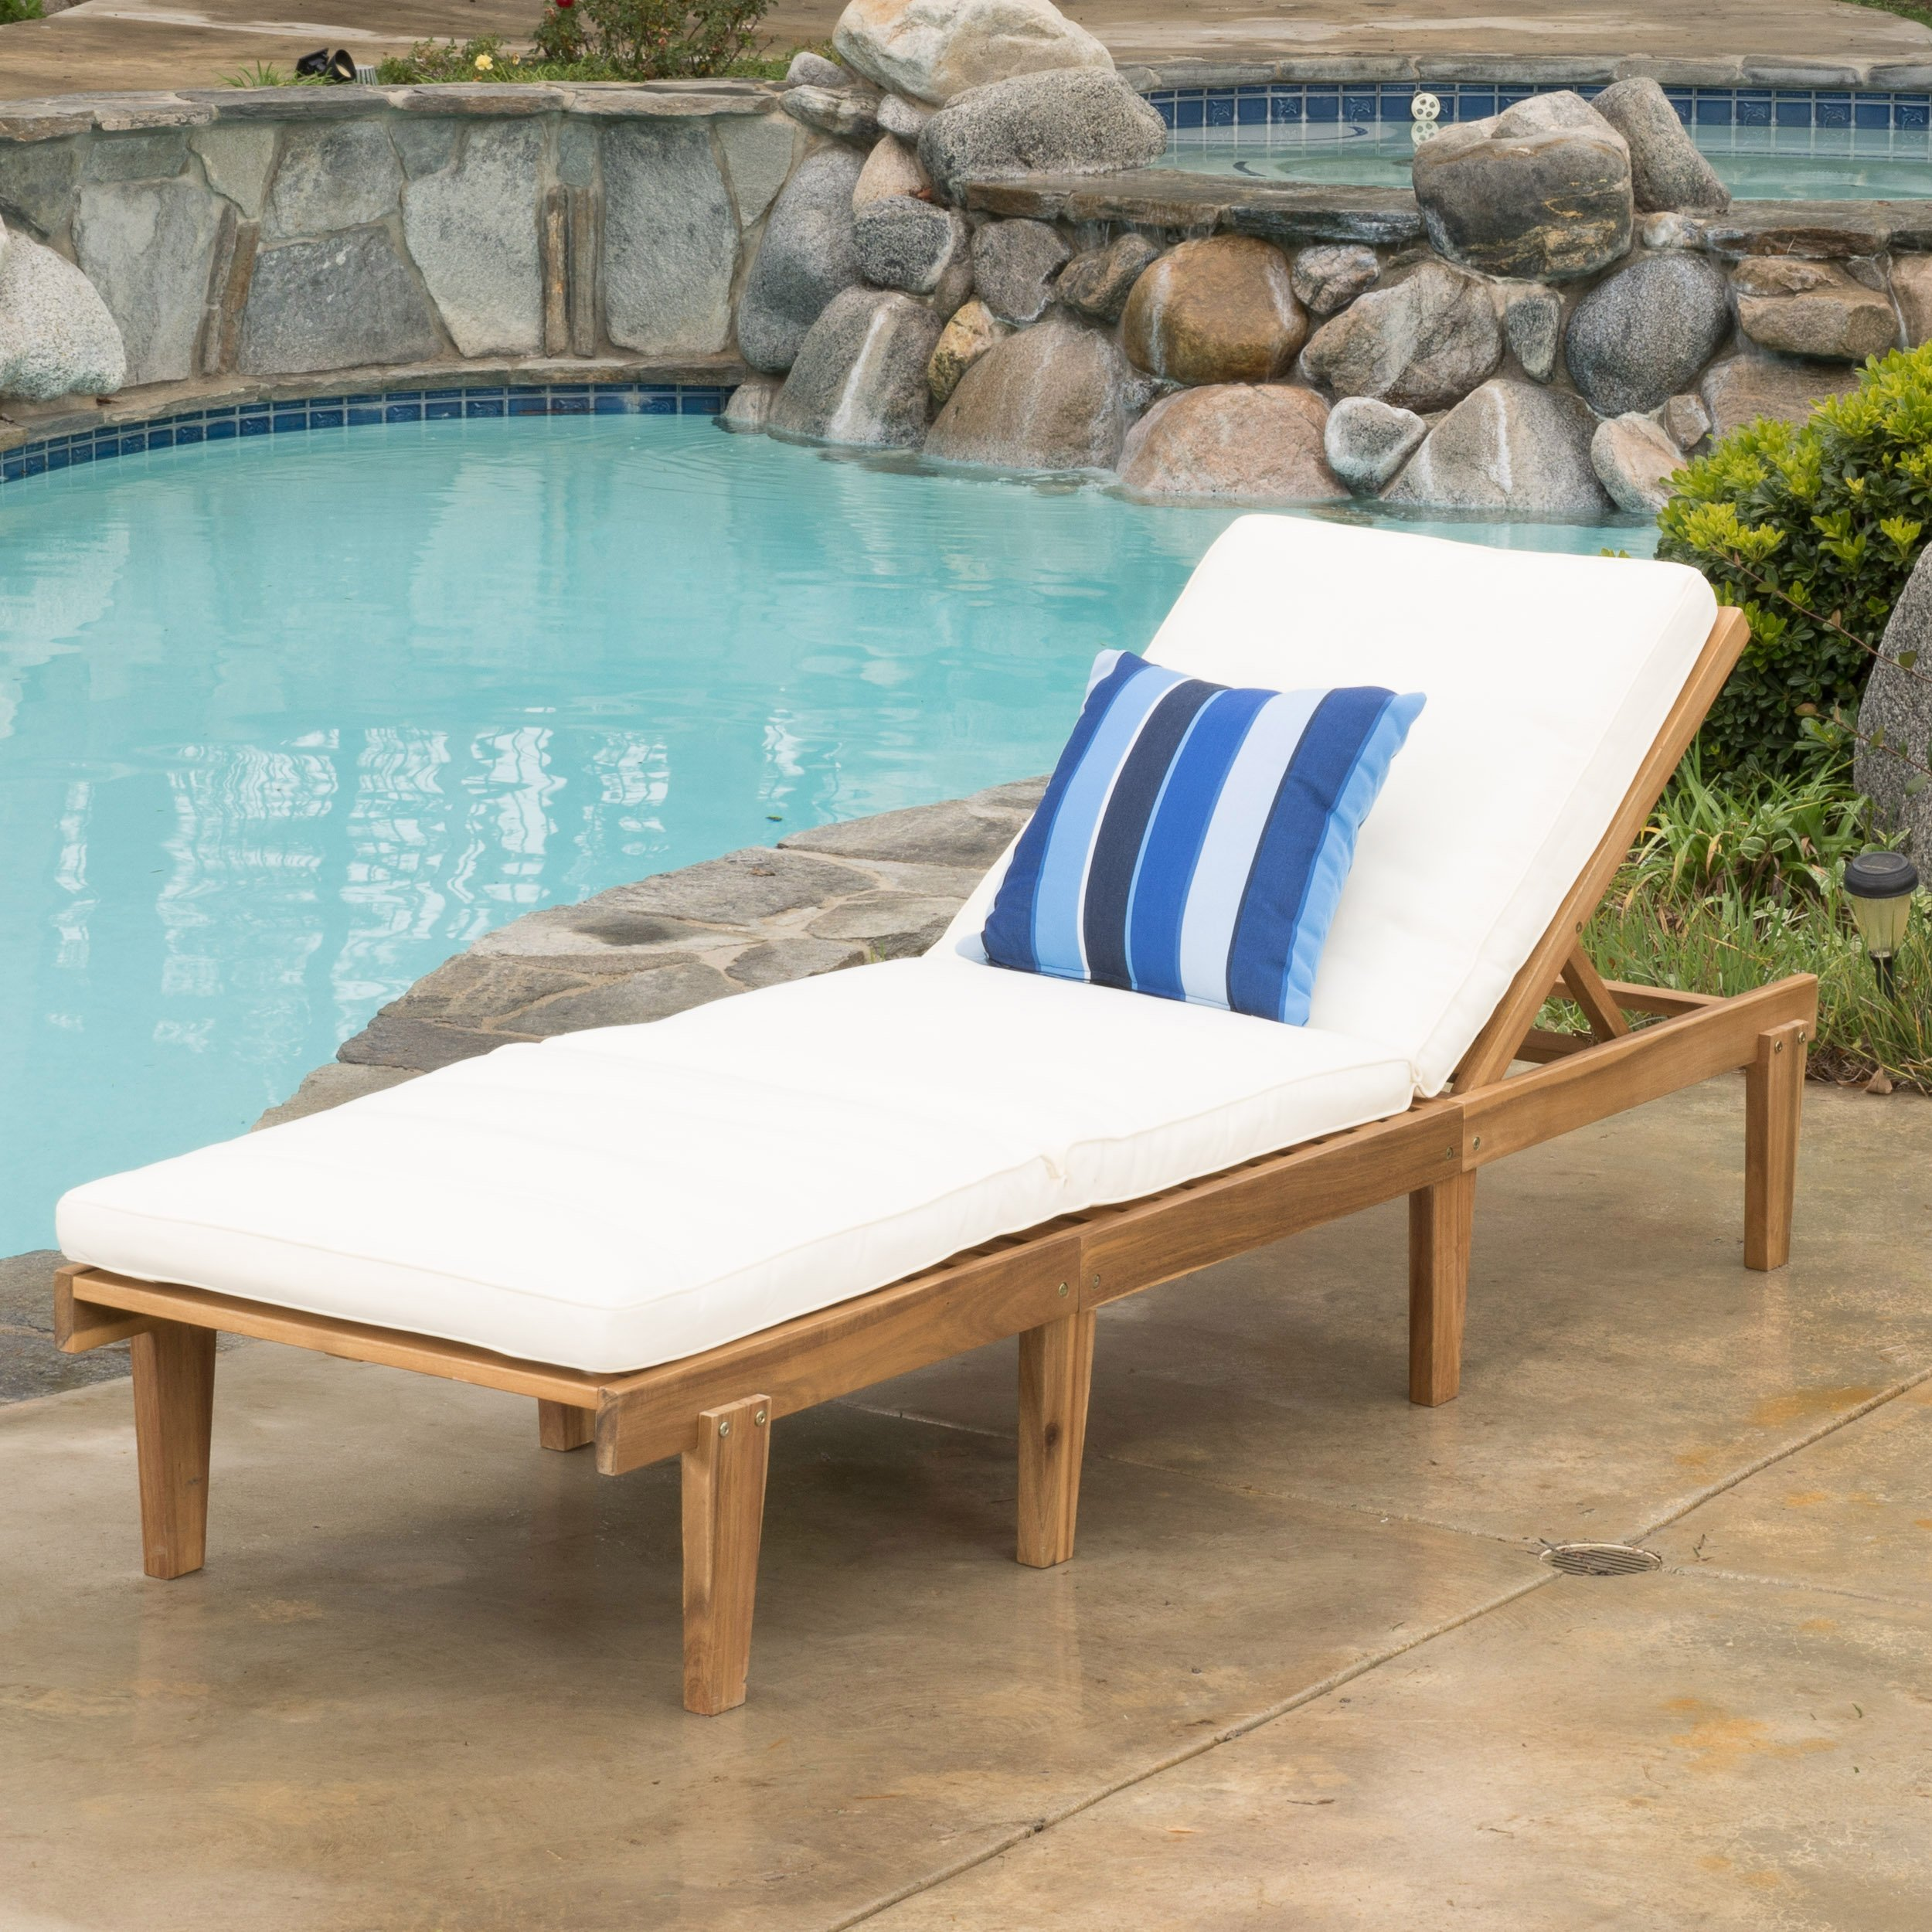 Christopher Knight Home Cushion Paolo Outdoor Wood Chaise Lounge